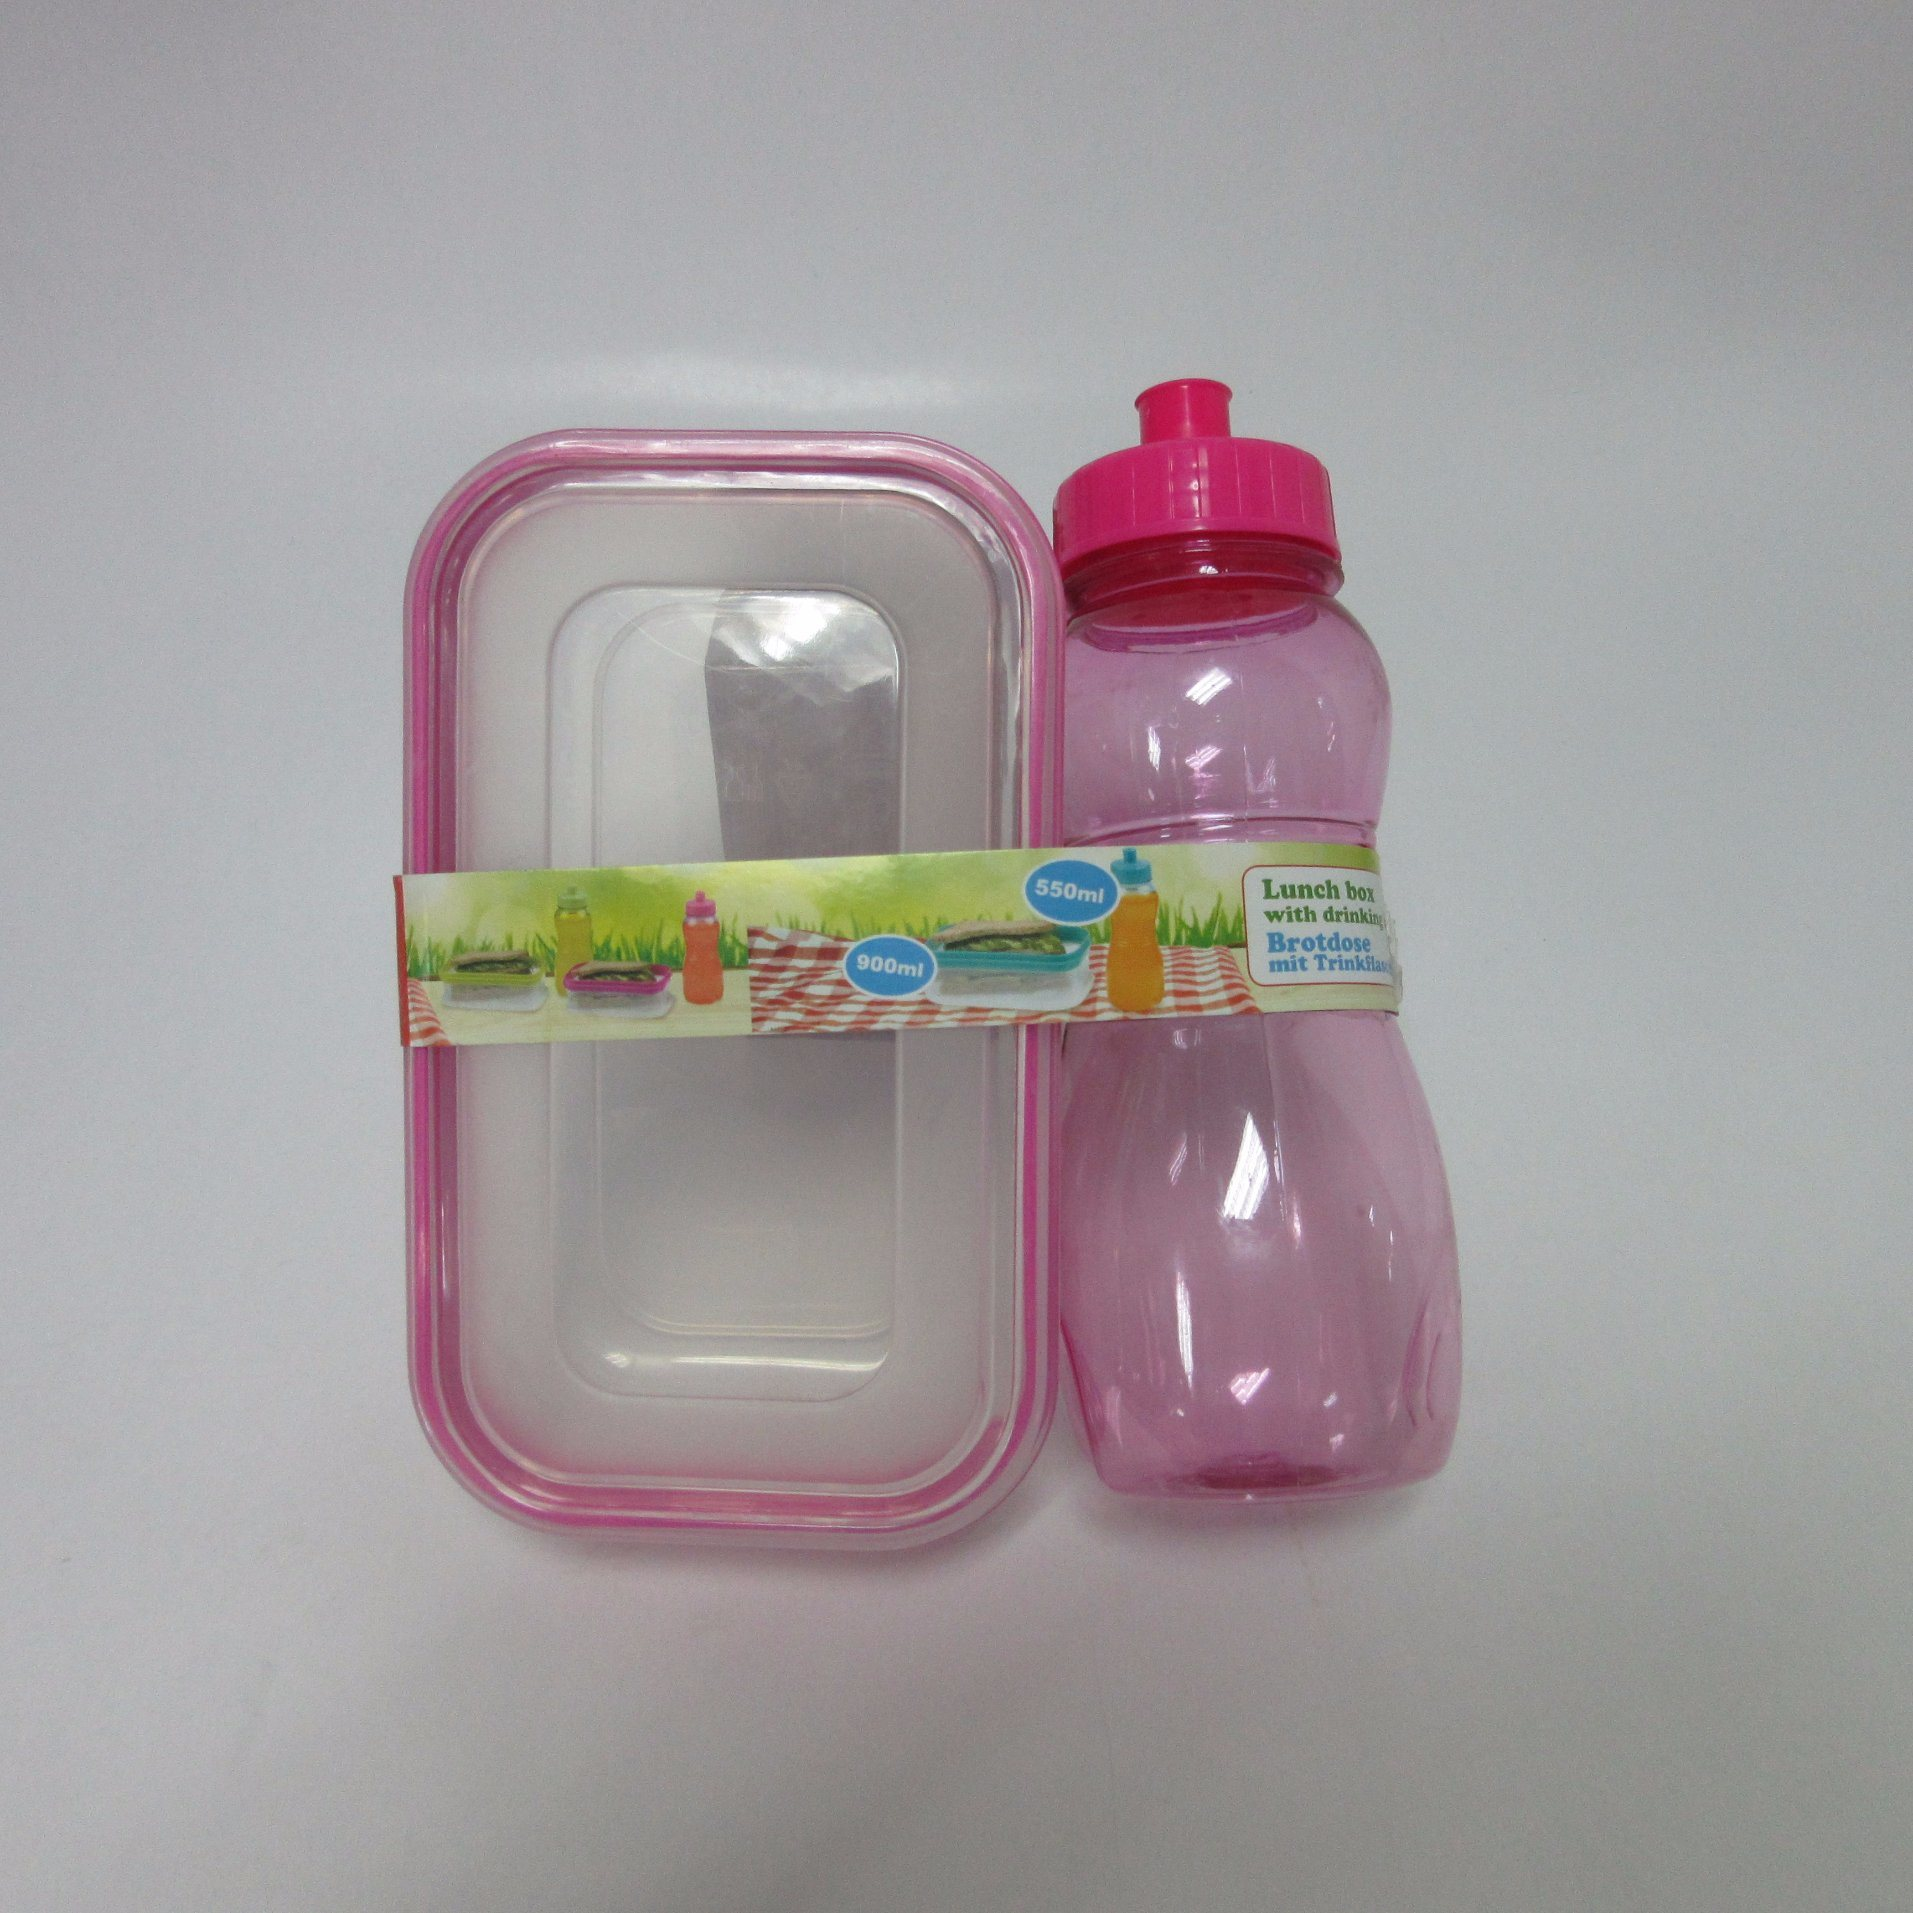 900ml Lunch Box with 550ml Drinking Bottle